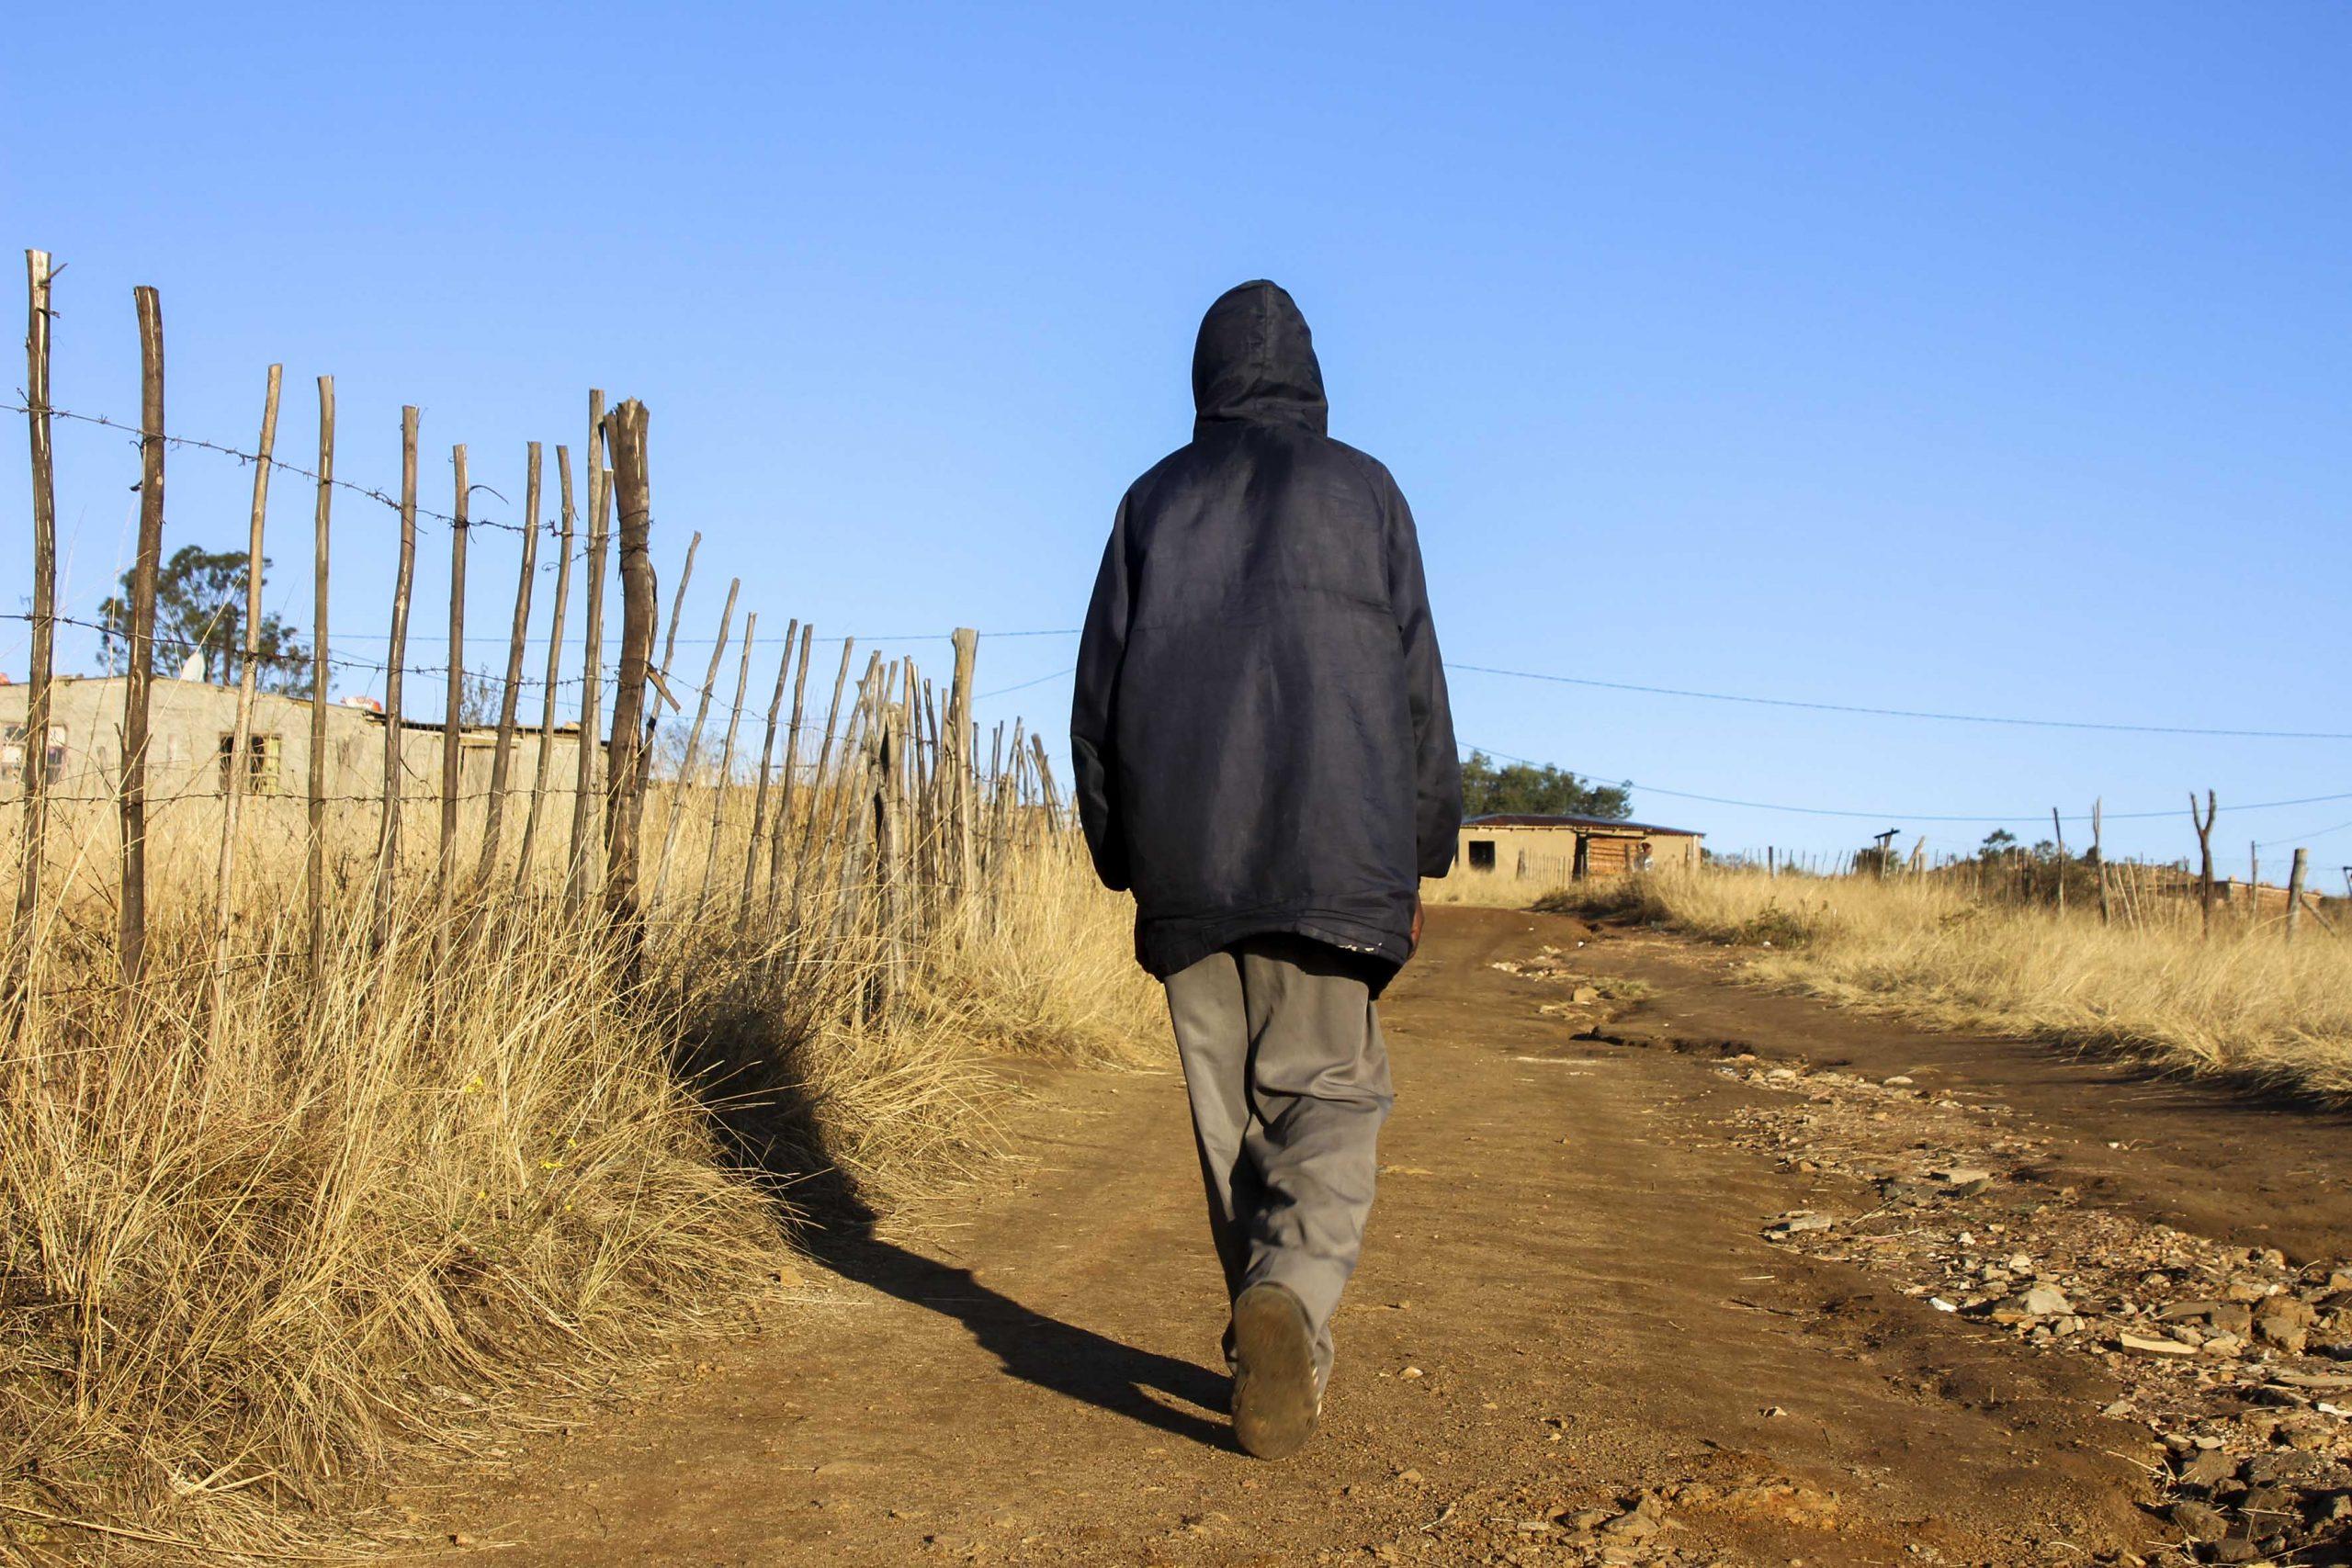 19 June 2020: Jasper Mahlangu (not his real name) on his way home to Thokozani village. He says he was accused of contravening lockdown rules and brutally beaten by police officers.